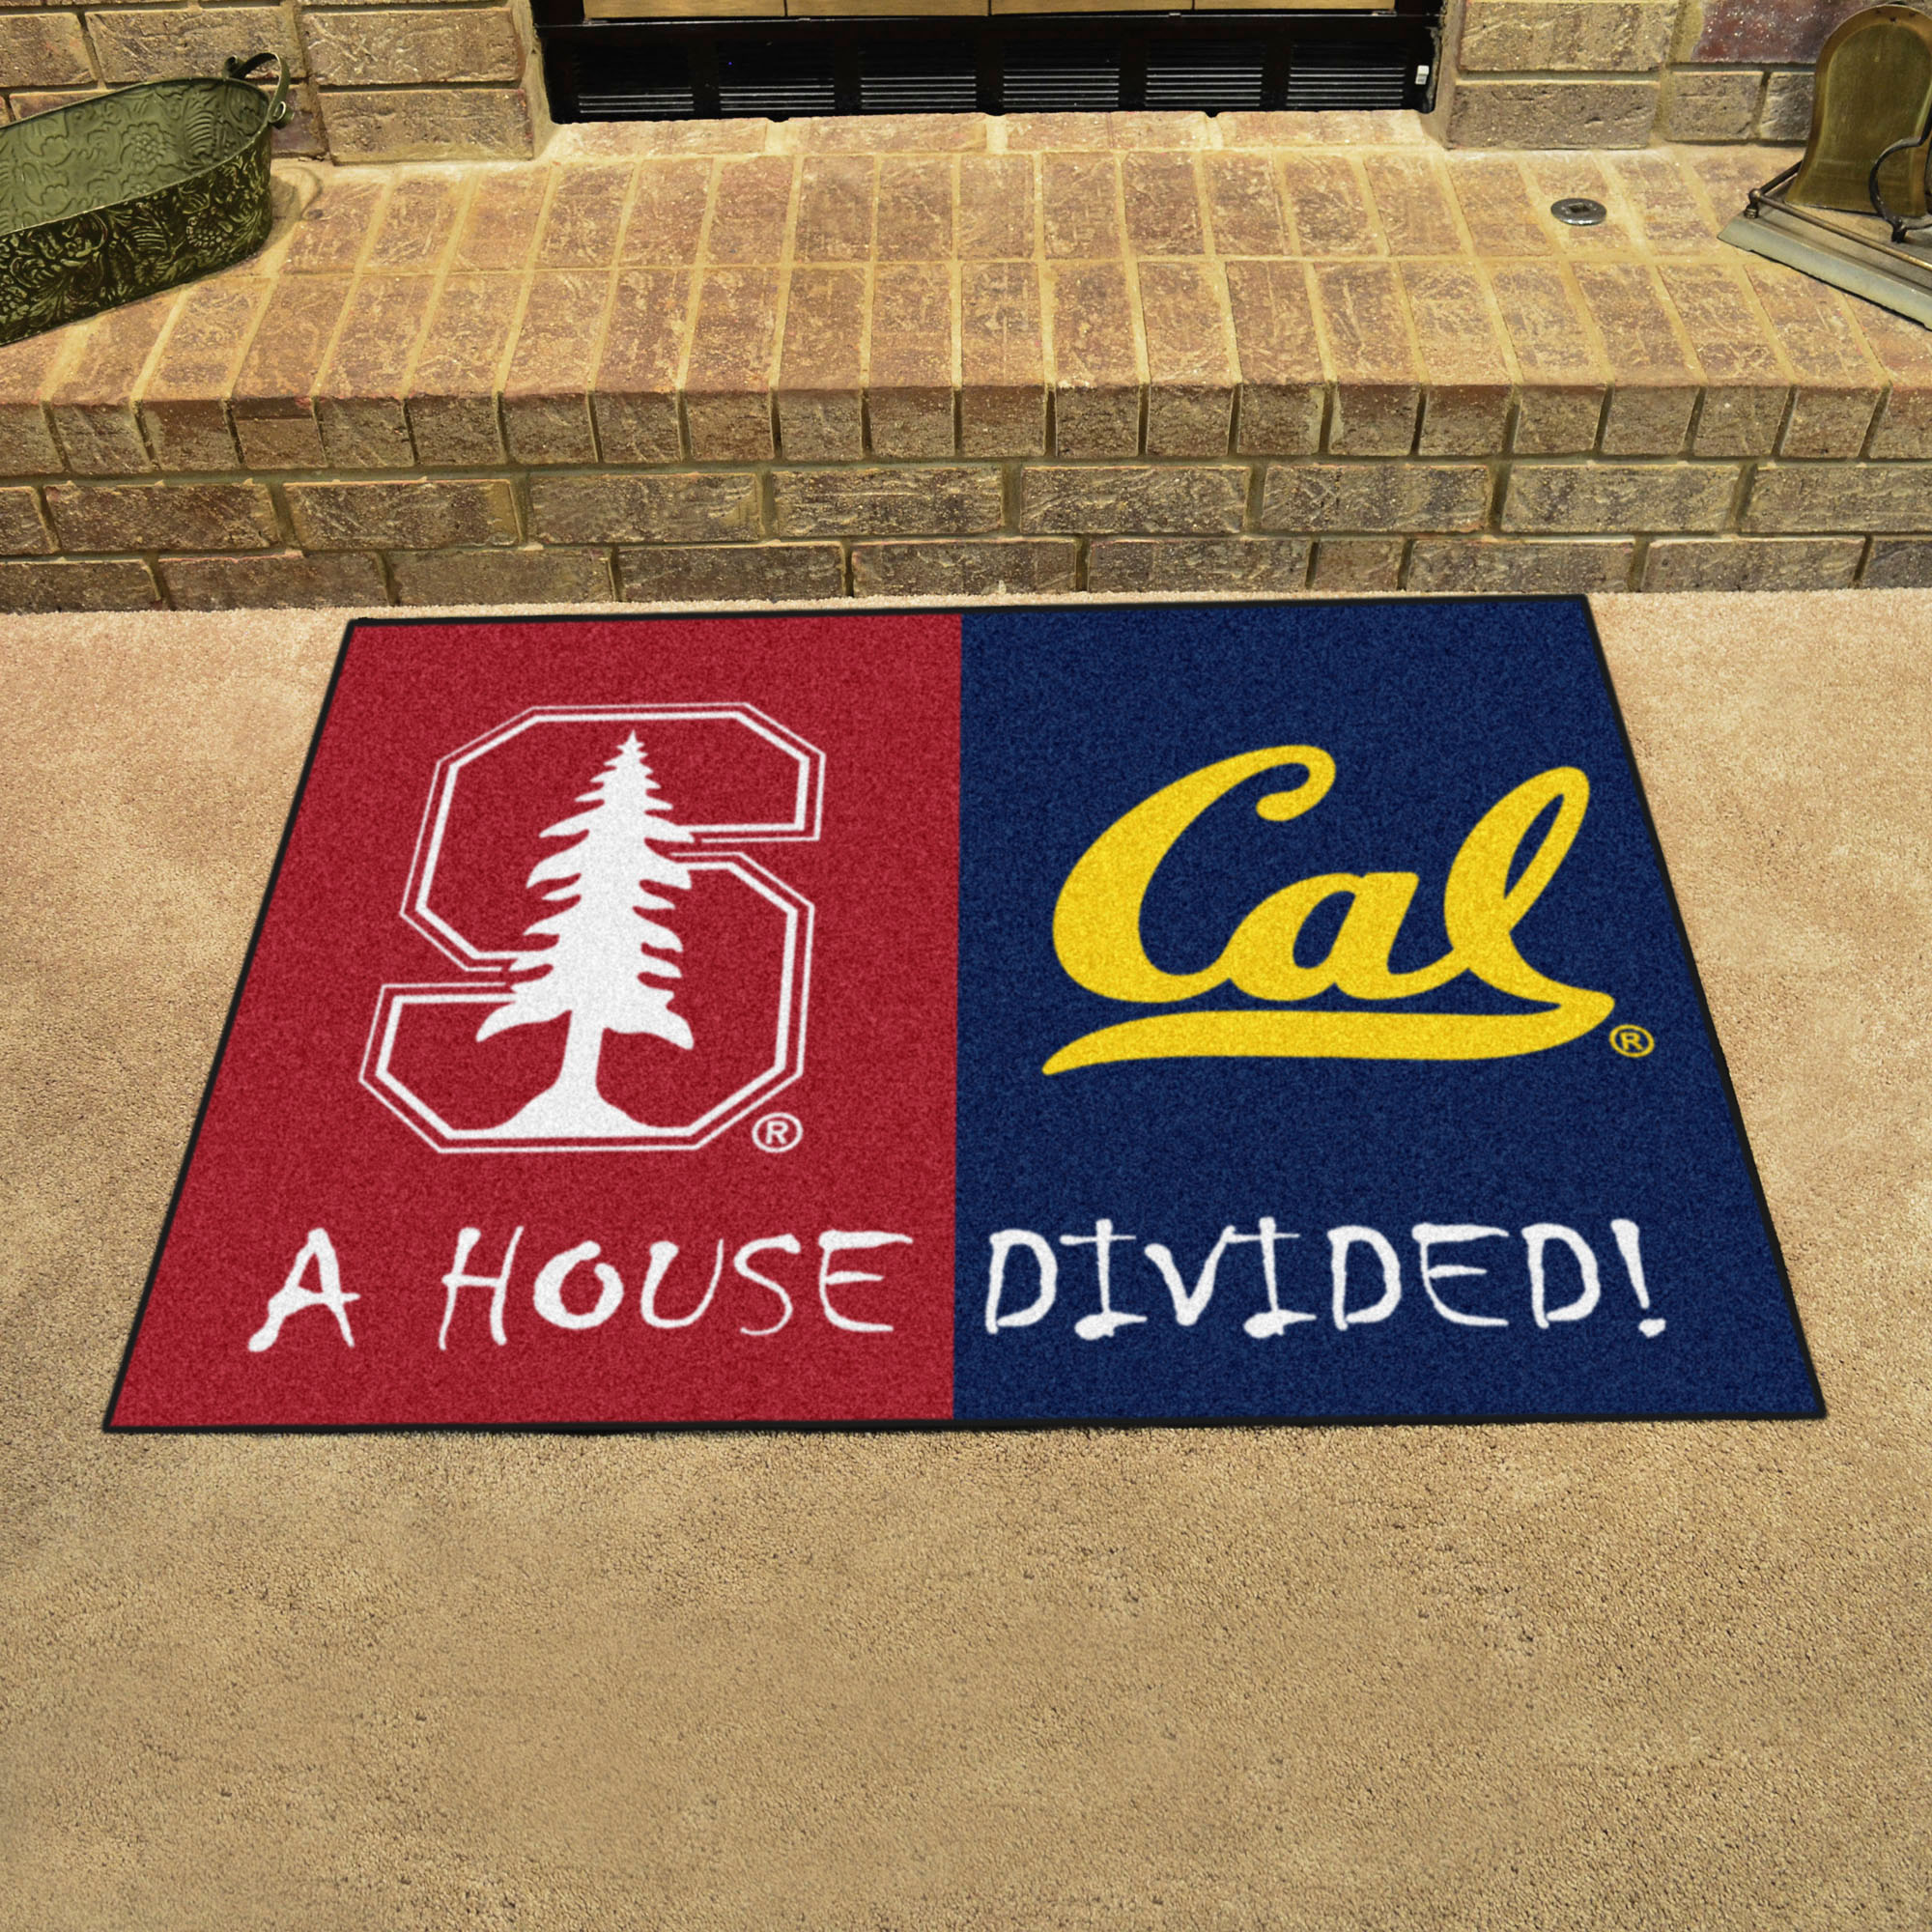 NCAA House Divided Rivalry Rug Stanford Cardinal - California Golden Bears